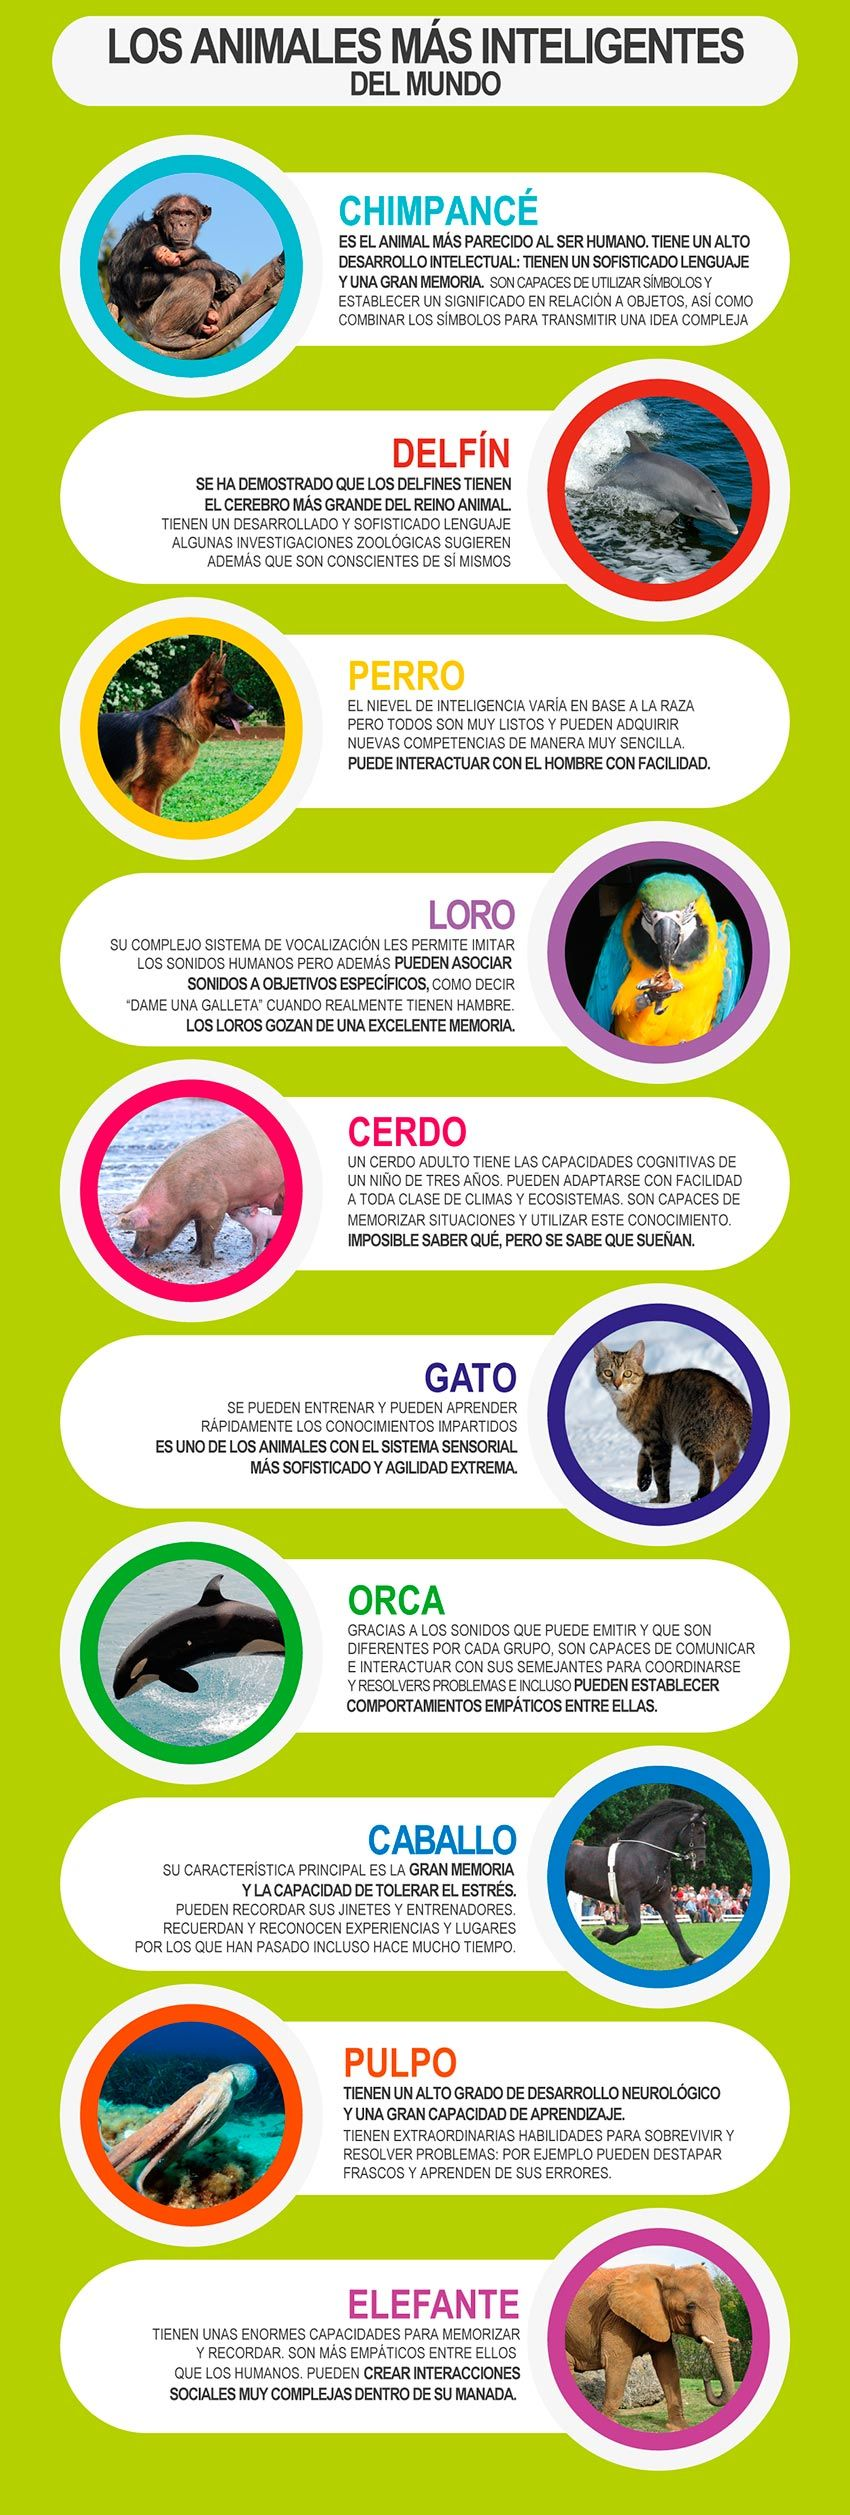 10 animales inteligentes